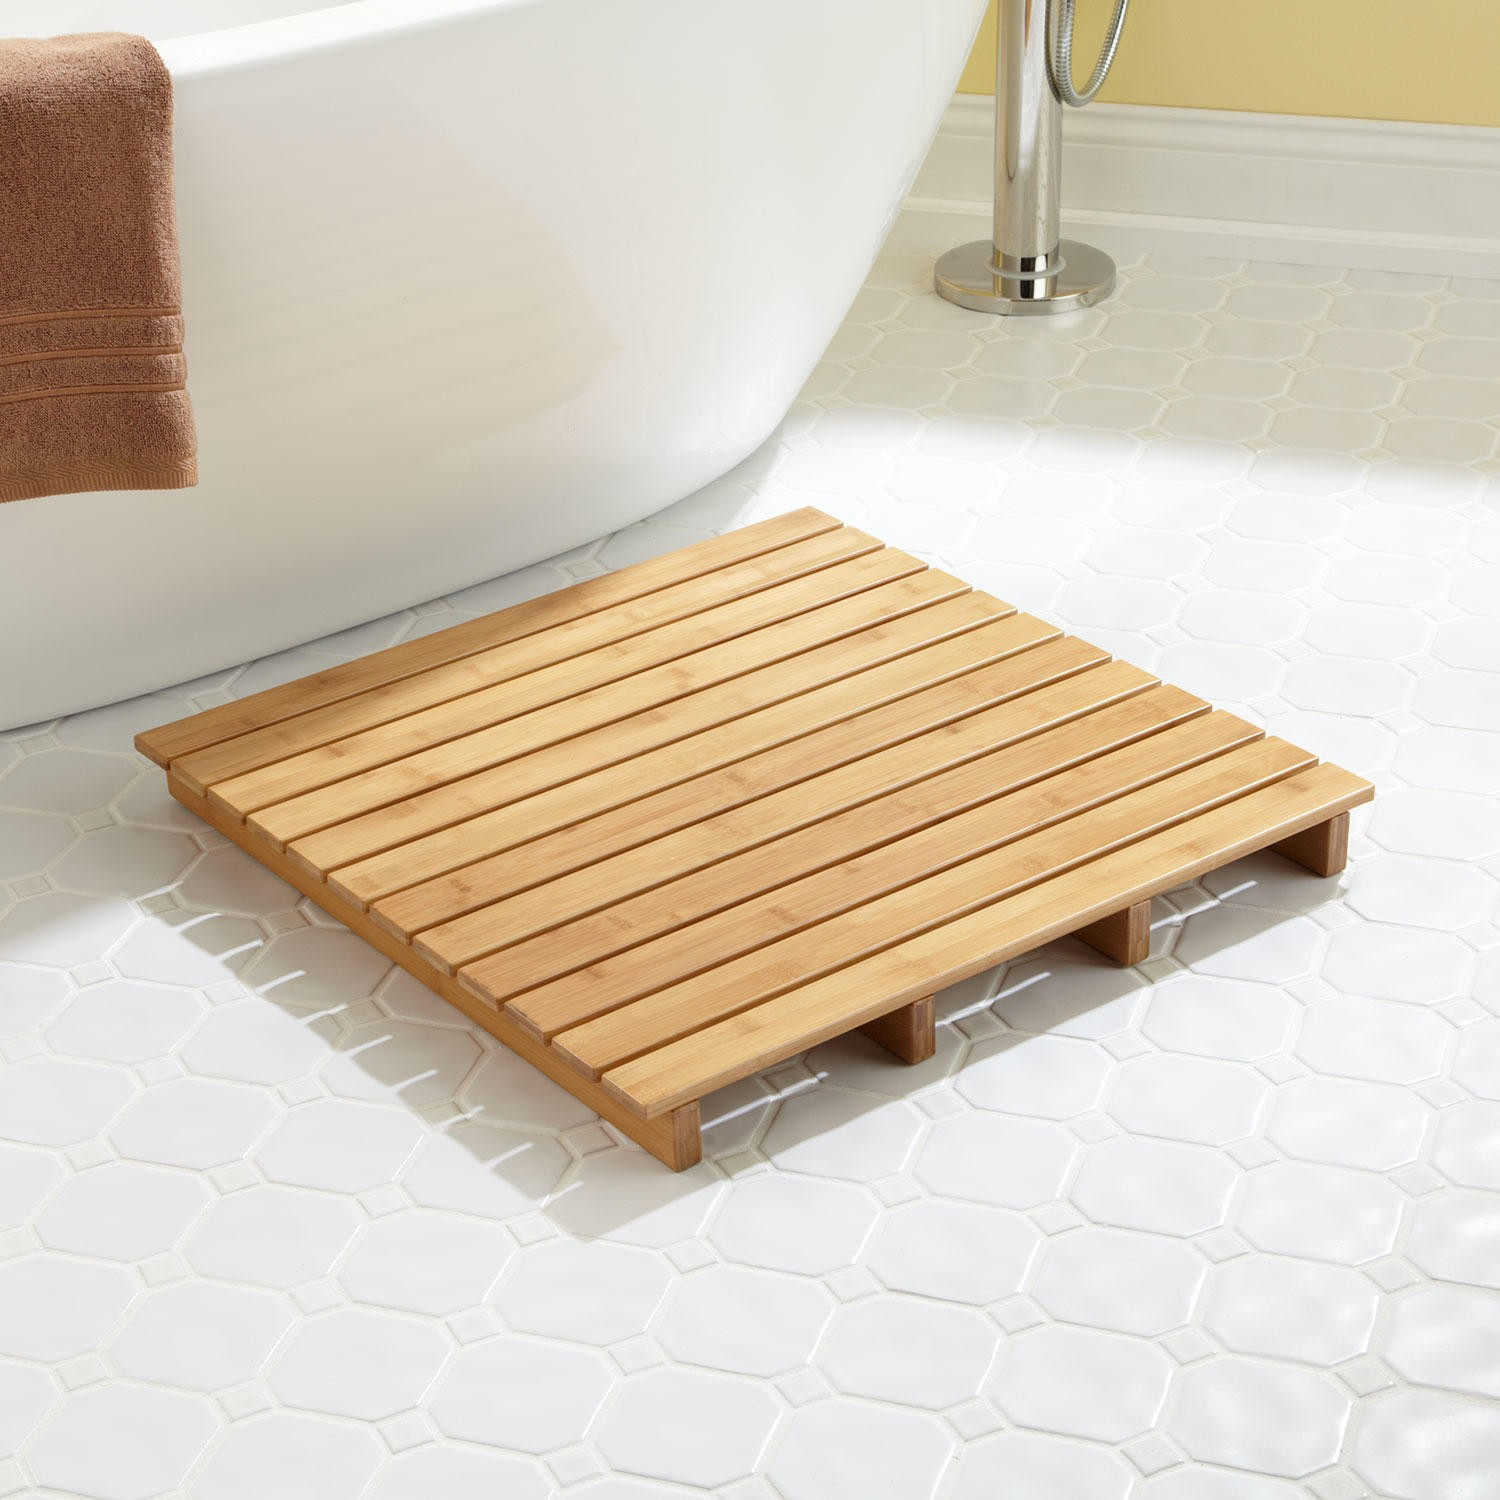 7 bath mat ideas to make your bathroom feel more like a spa extra long bath mats long non slip bathtub amp shower mats